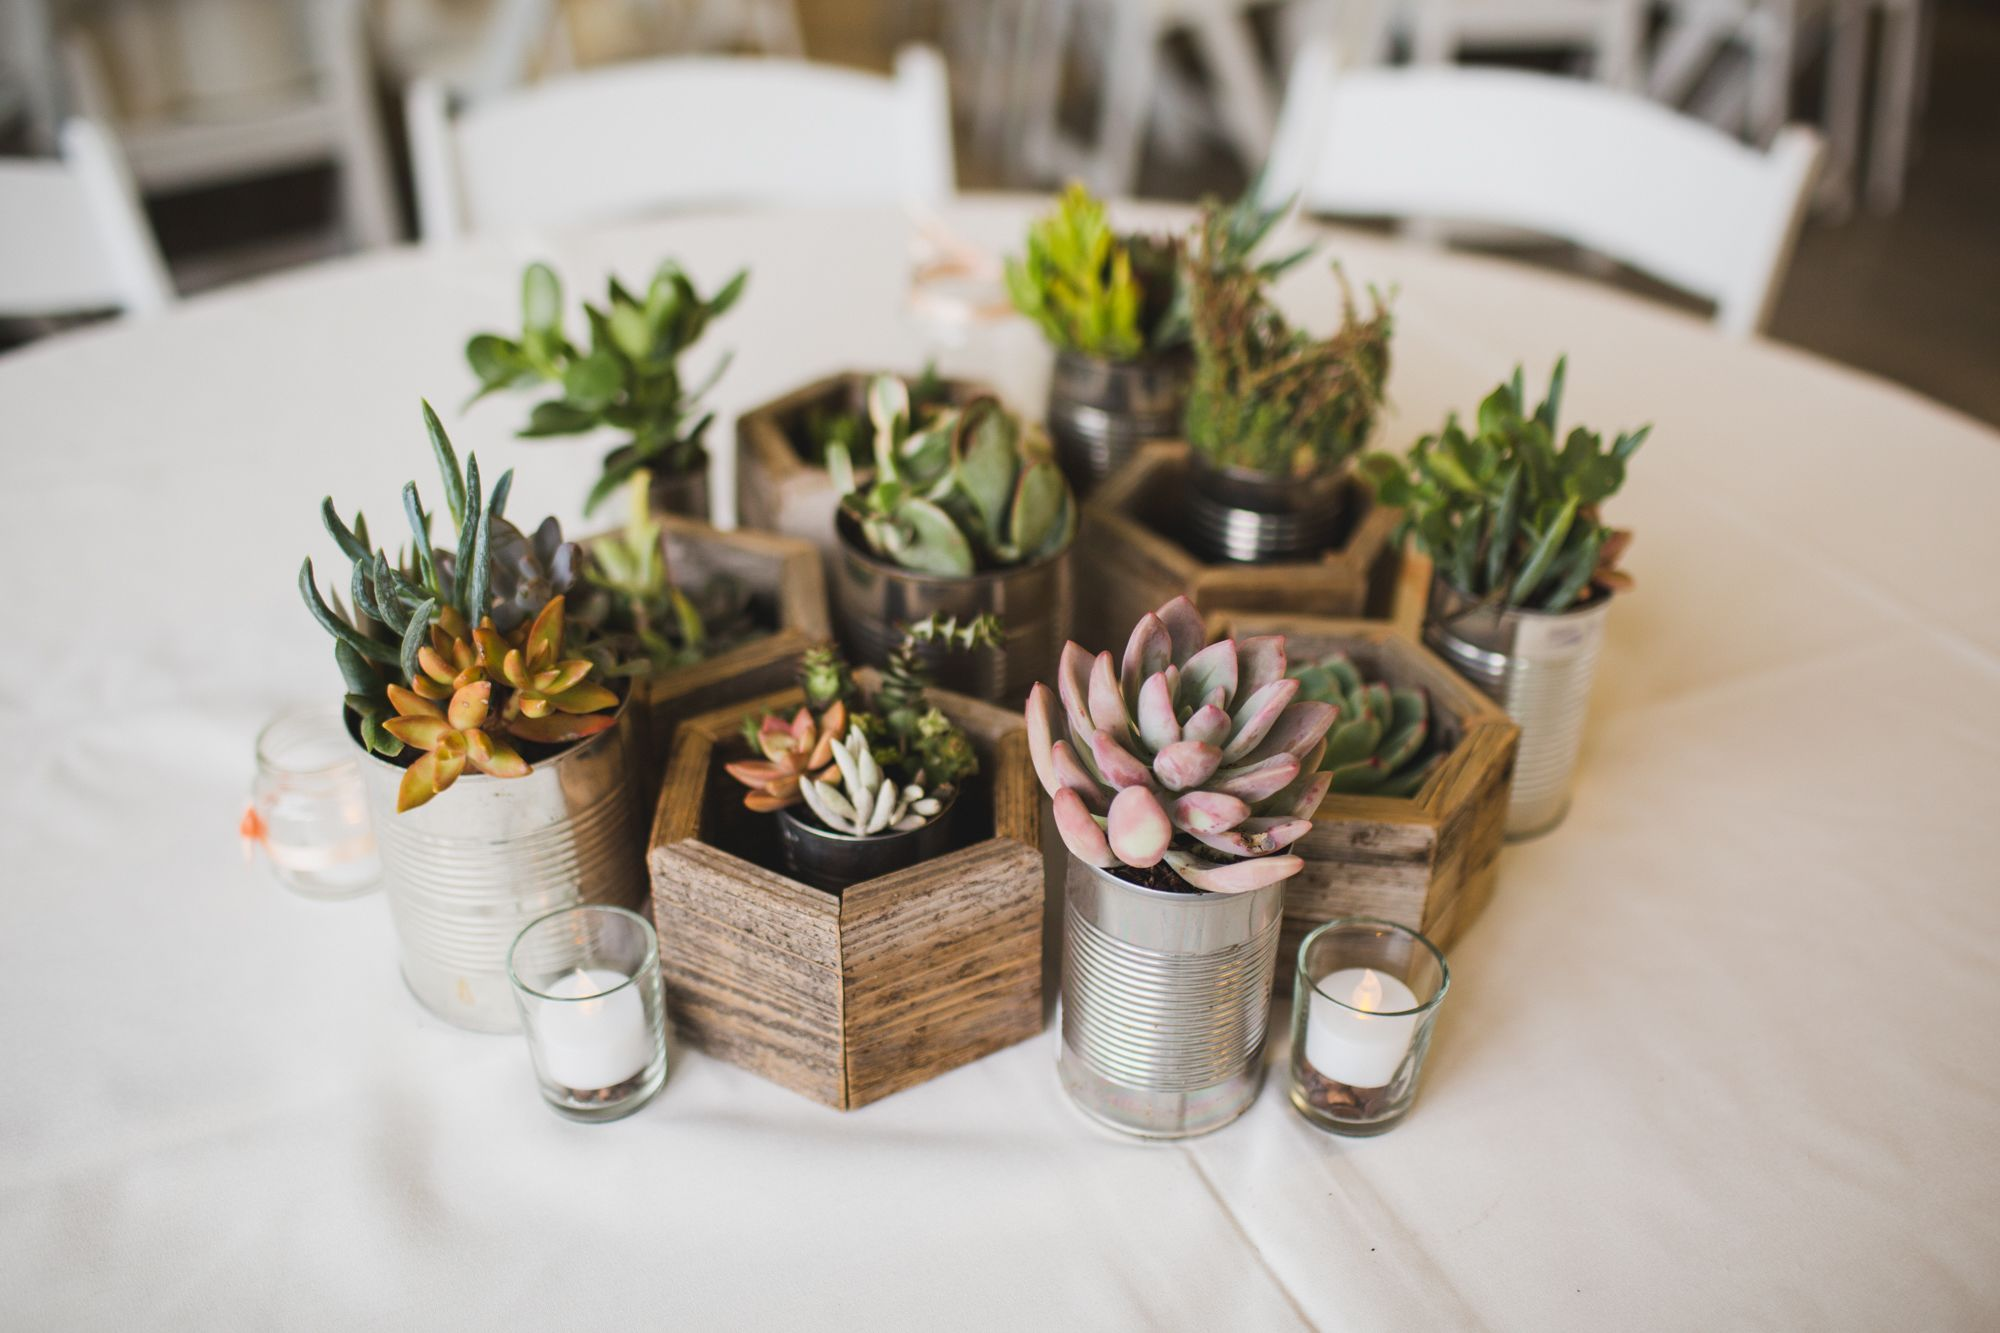 Diy succulent centerpieces in recycled planters centerpiece in